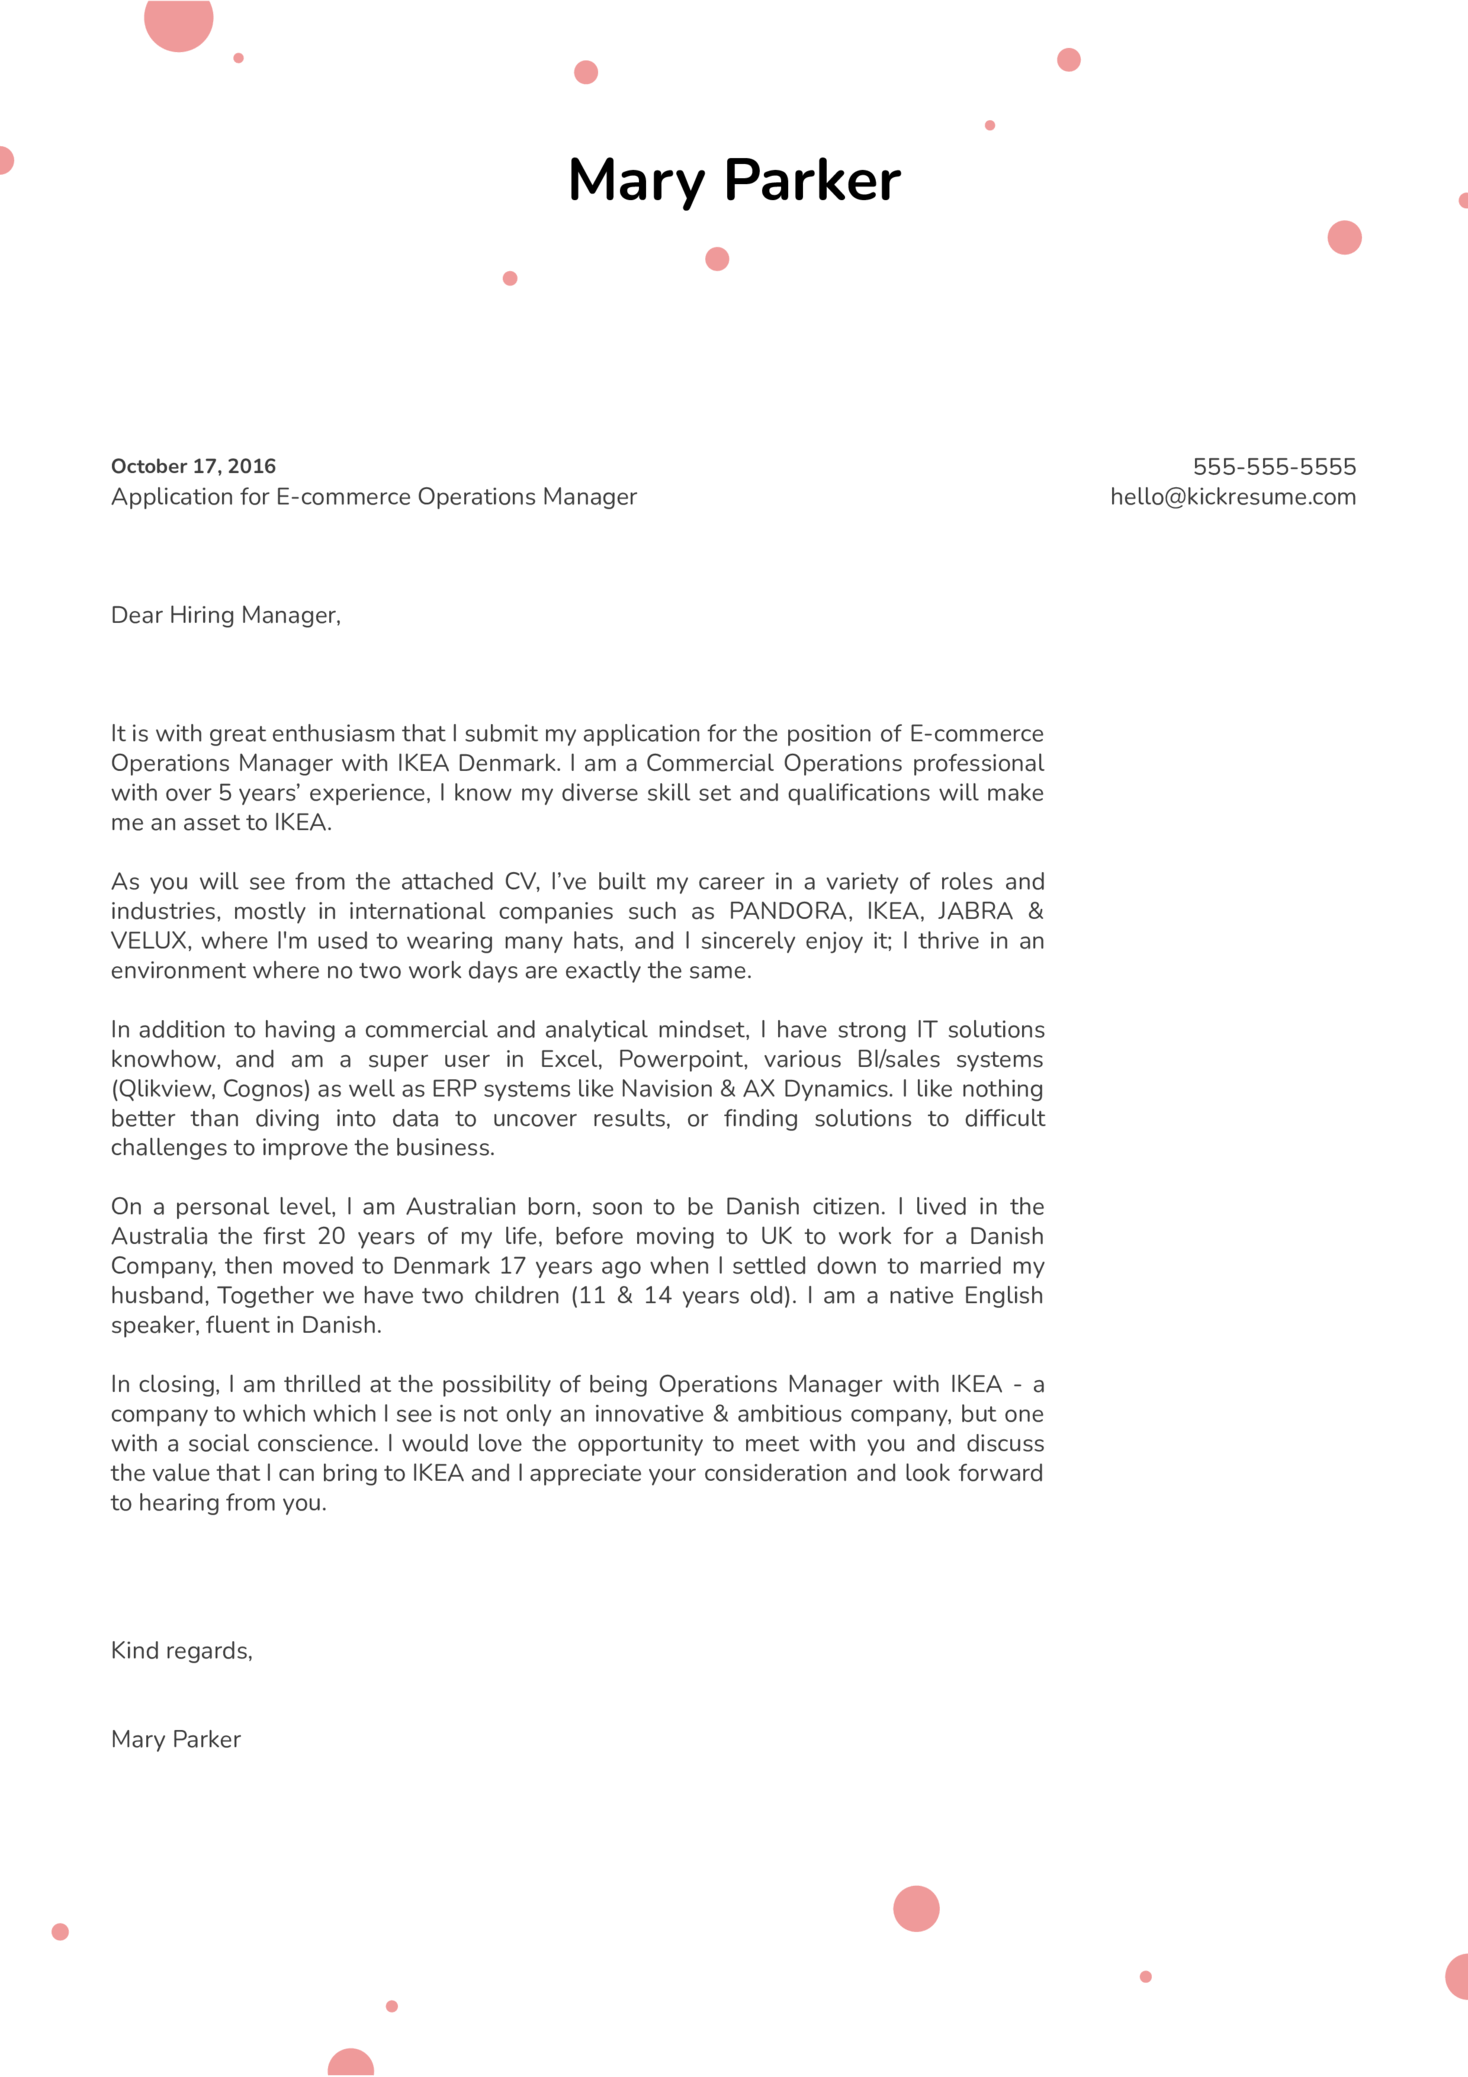 Ikea E Commerce Operations Manager Cover Letter Example Kickresume